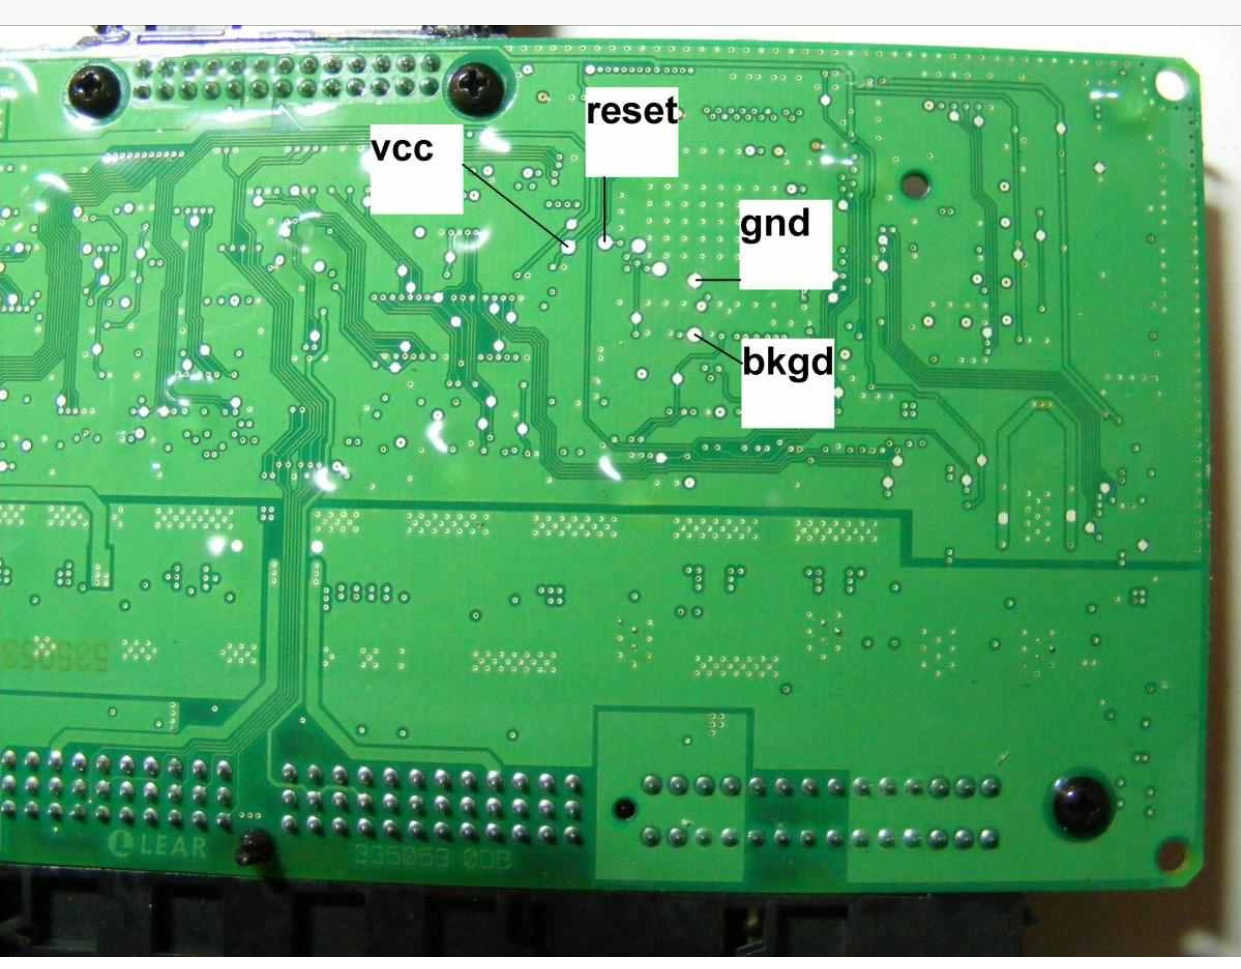 335i Fuse Diagram How To Repair Bmw Frm3 Ifh 0009 Error Or No Communication